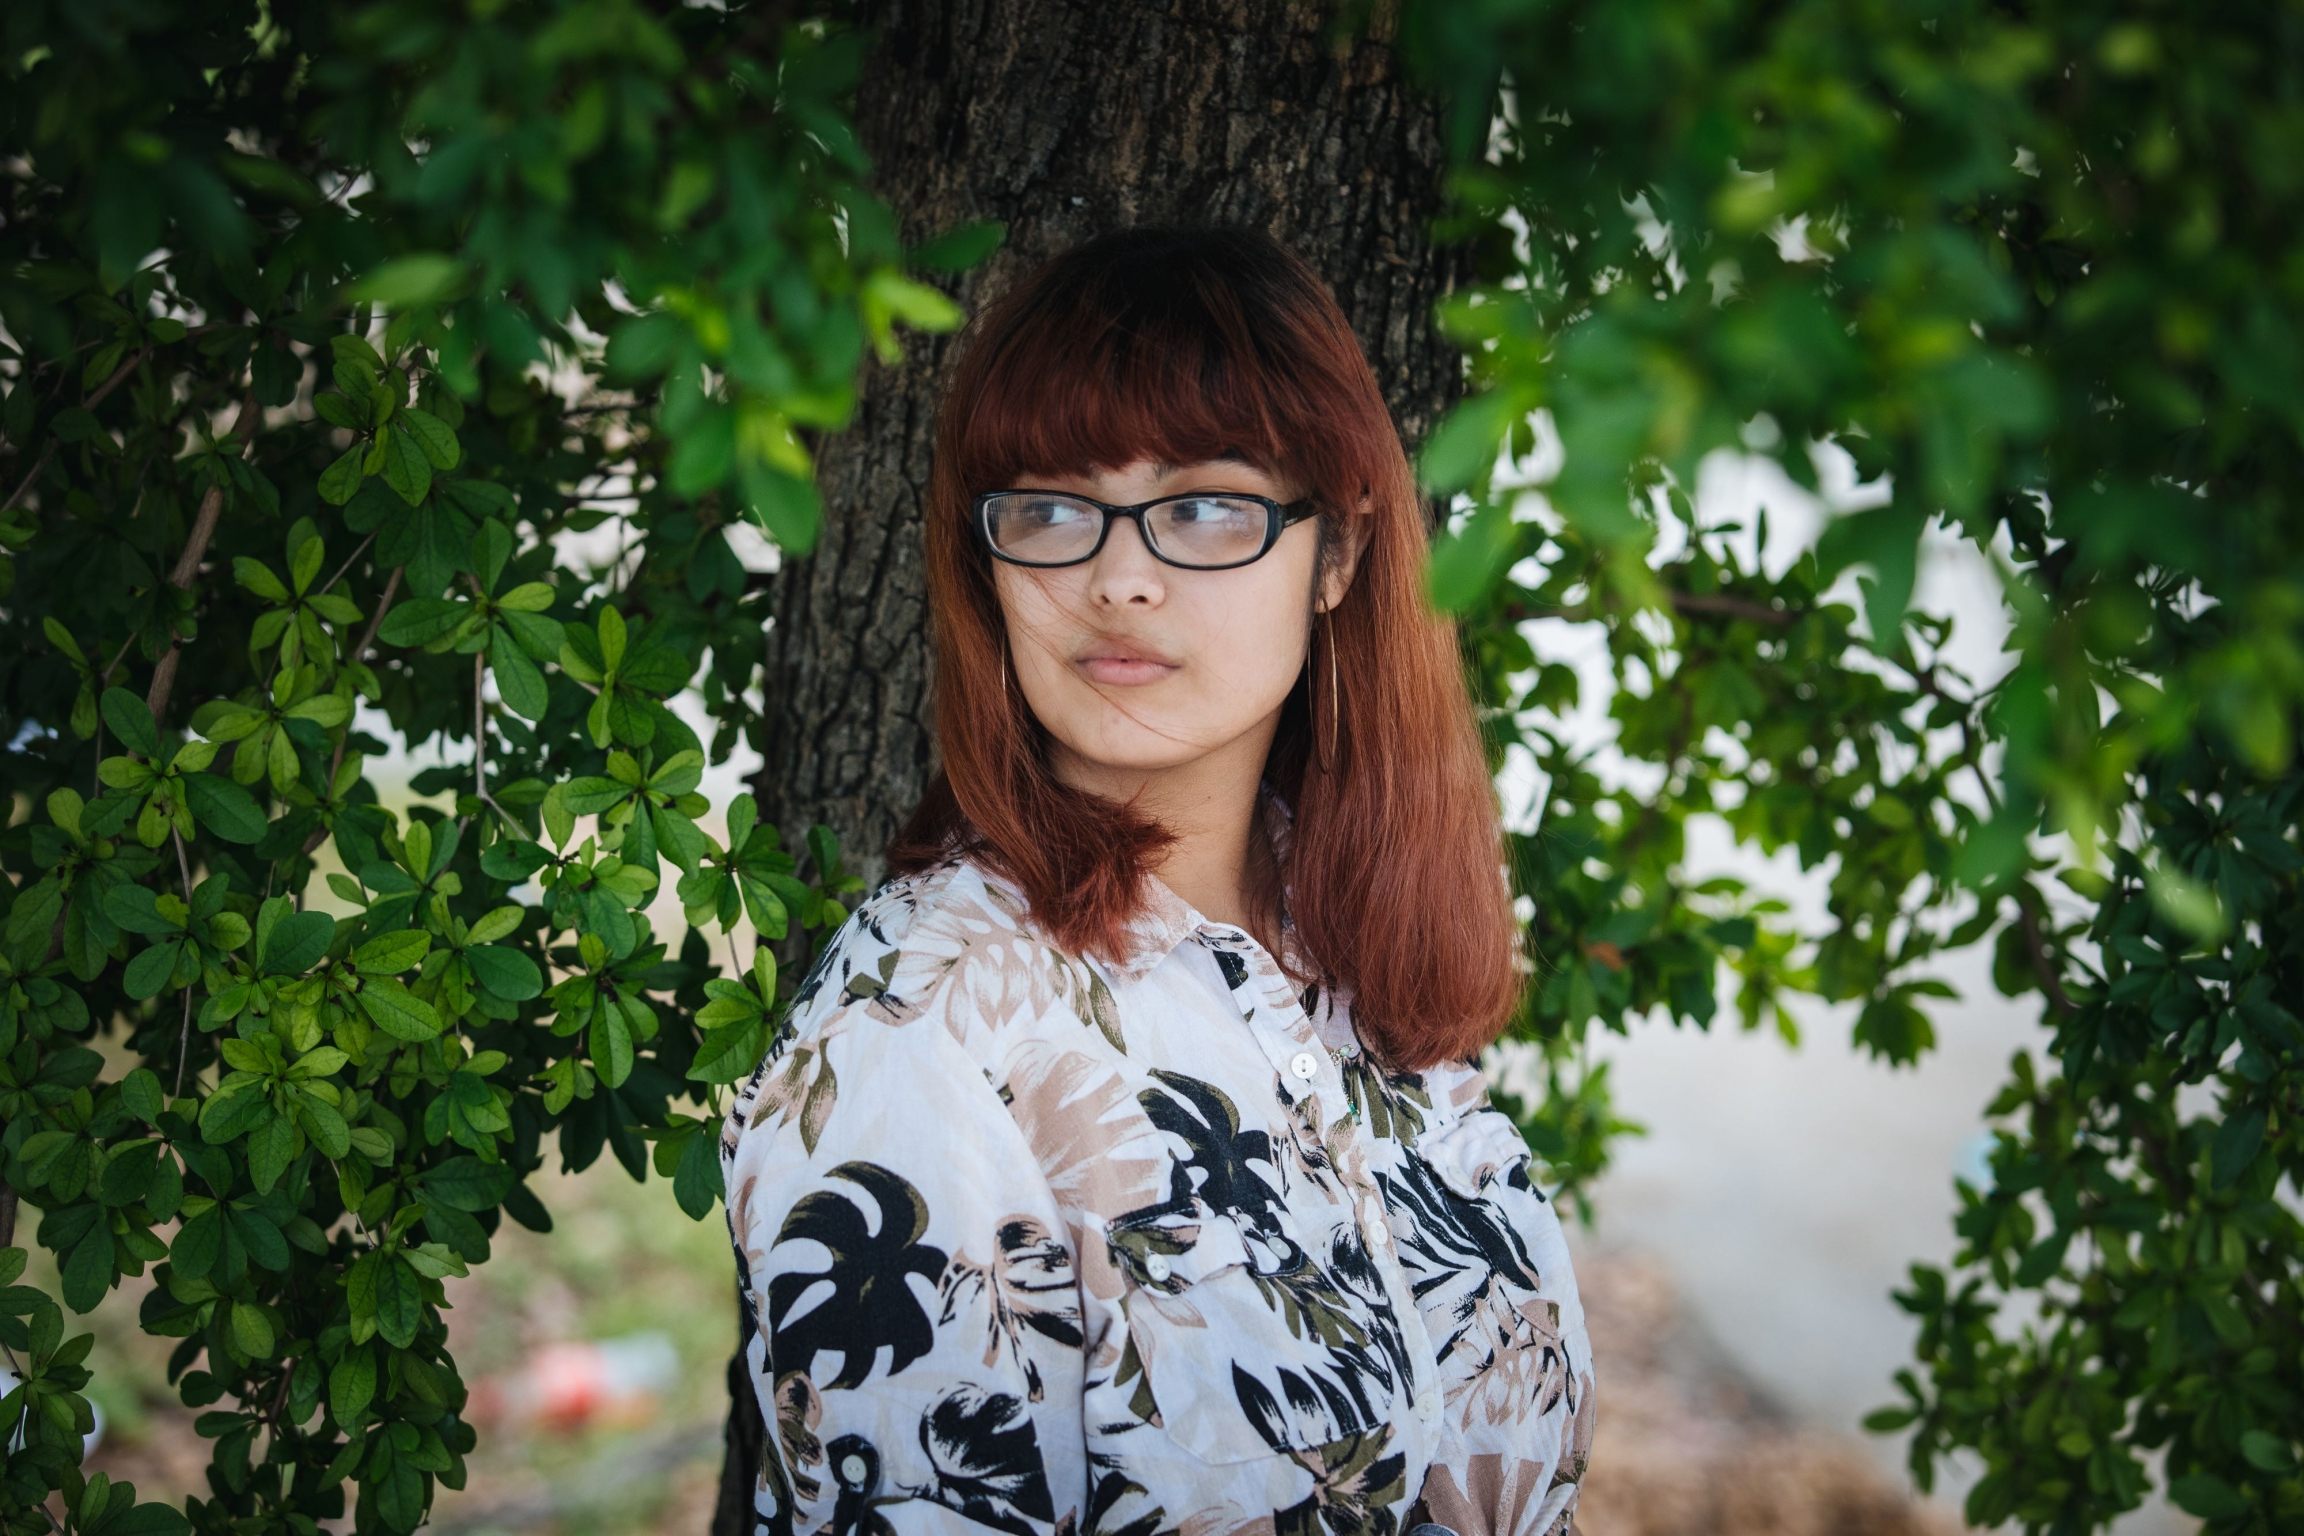 A young woman on a floral shirt posses for a photo in a garden.